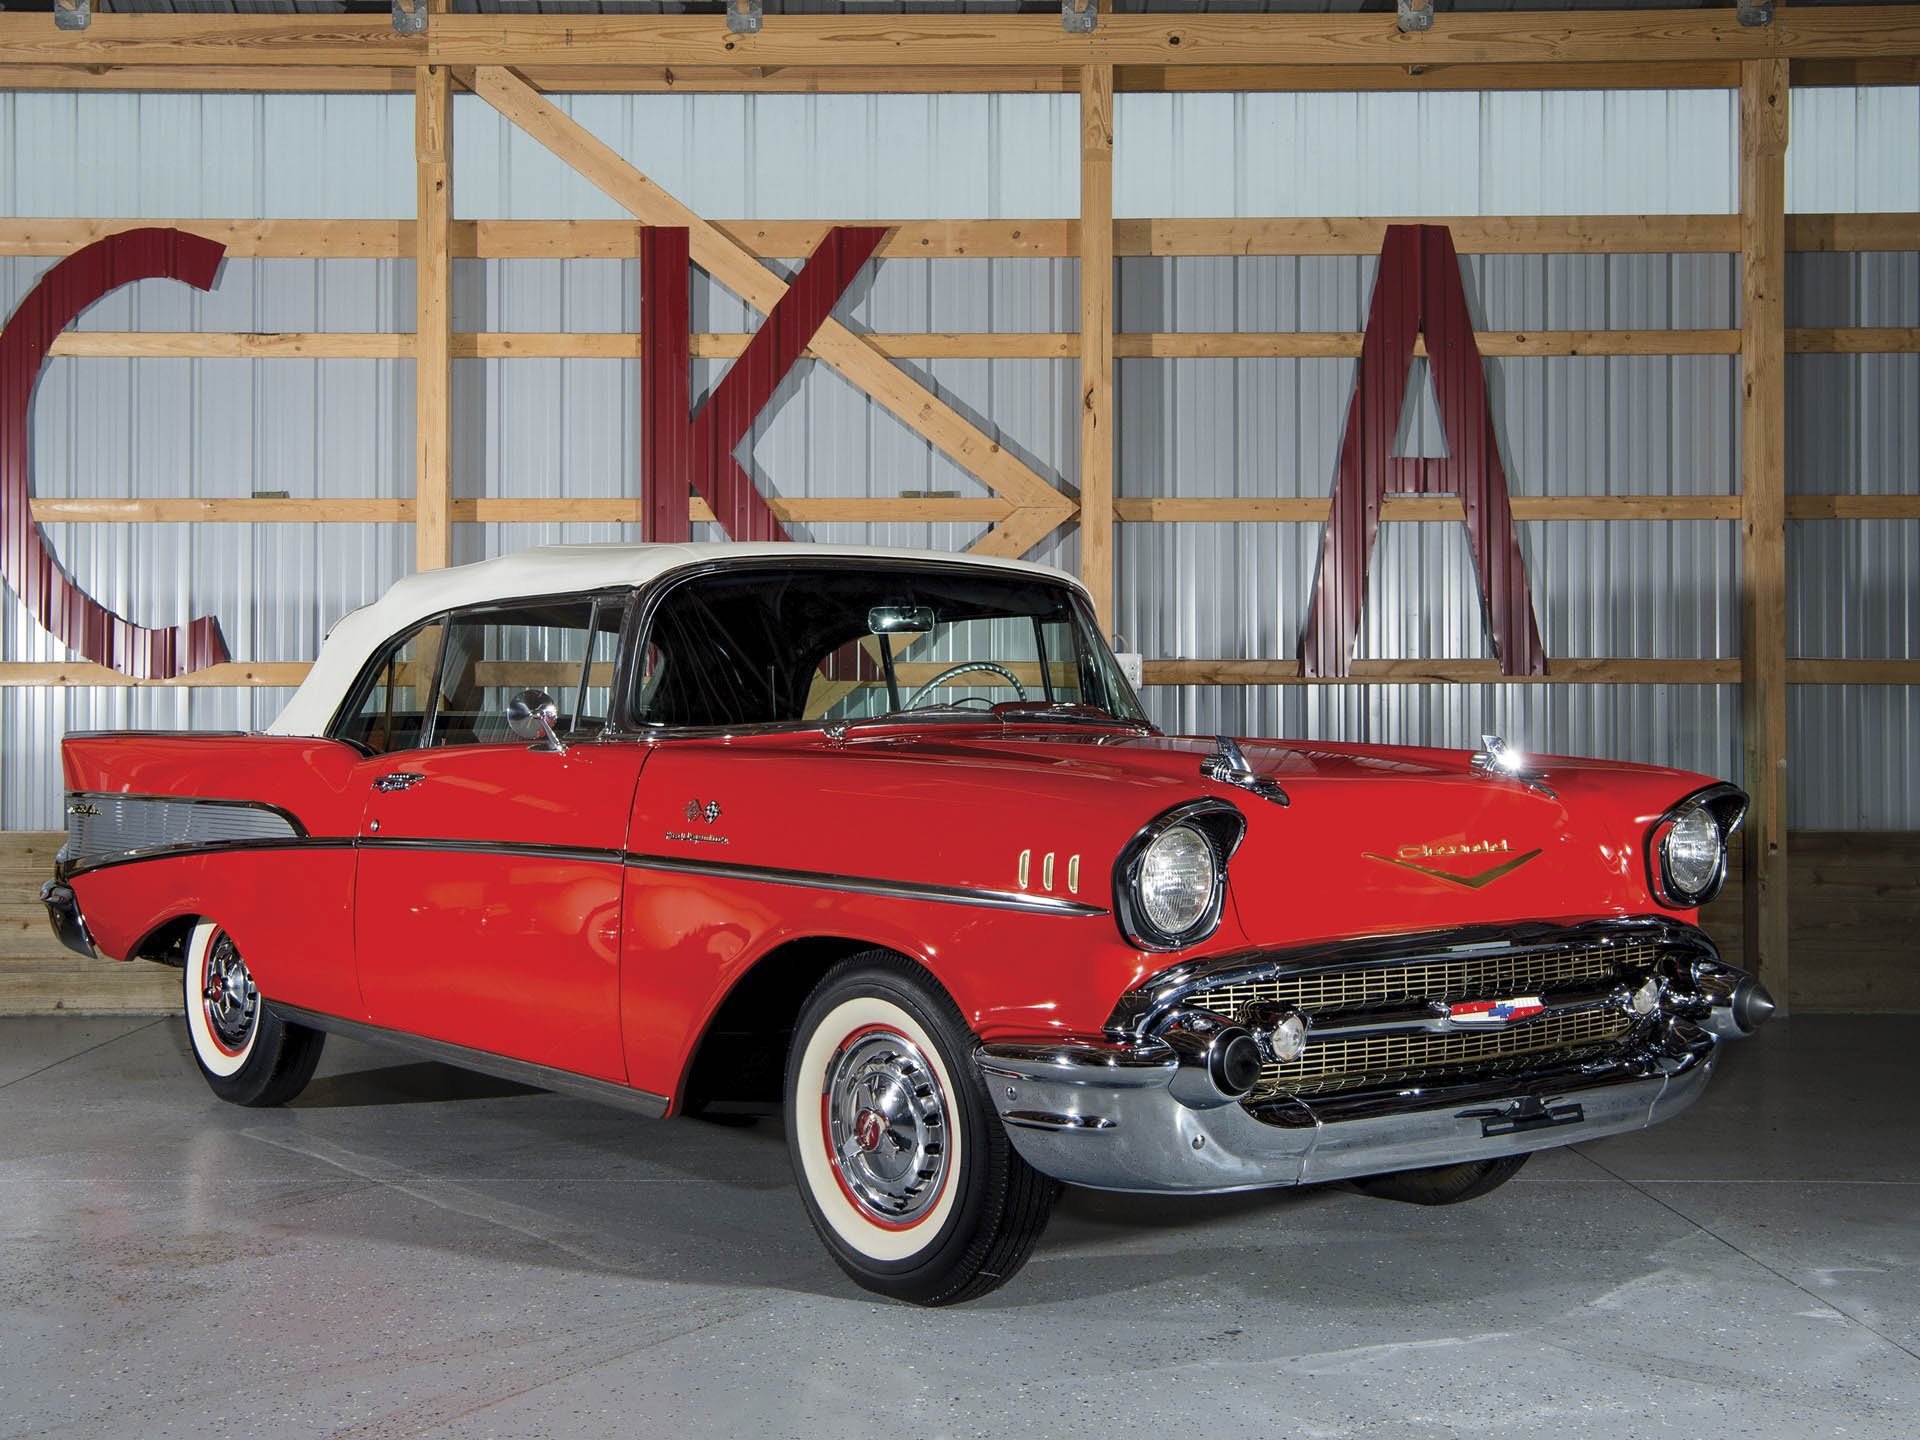 1957 Chevrolet Bel Air 'Fuel-Injected' Convertible